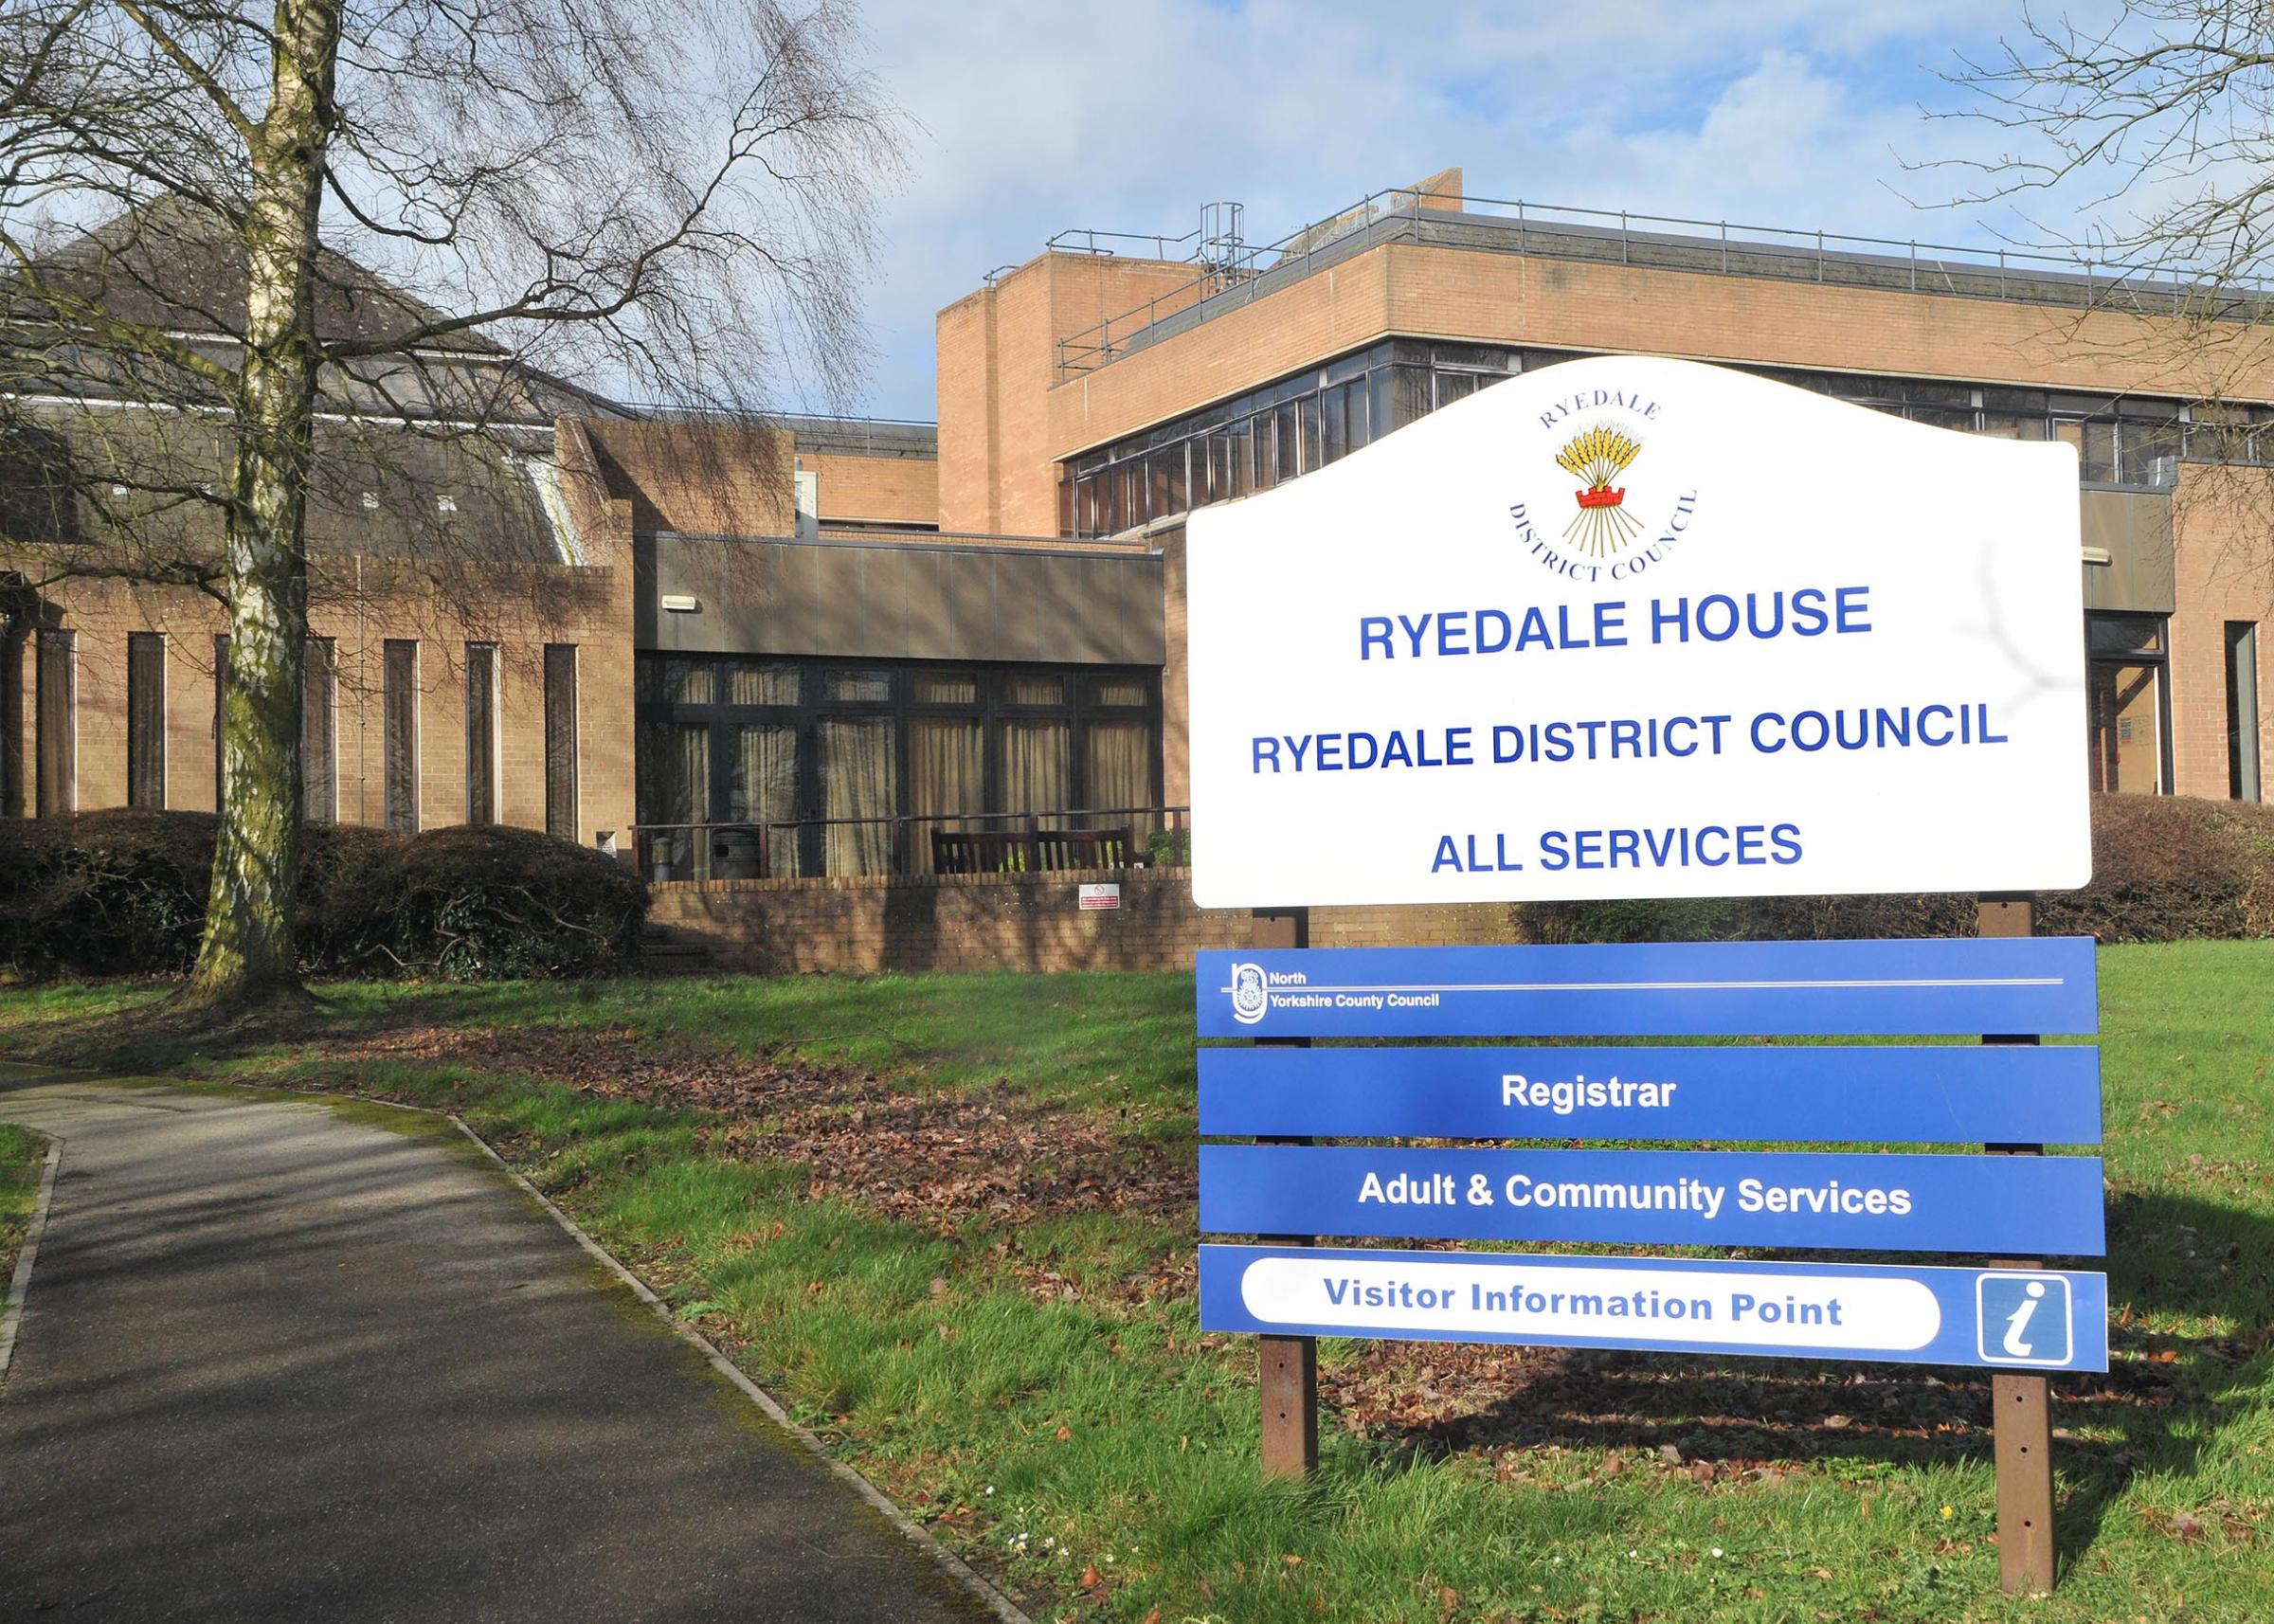 Ryedale House, current home of Ryedale District Council, in Old Malton.